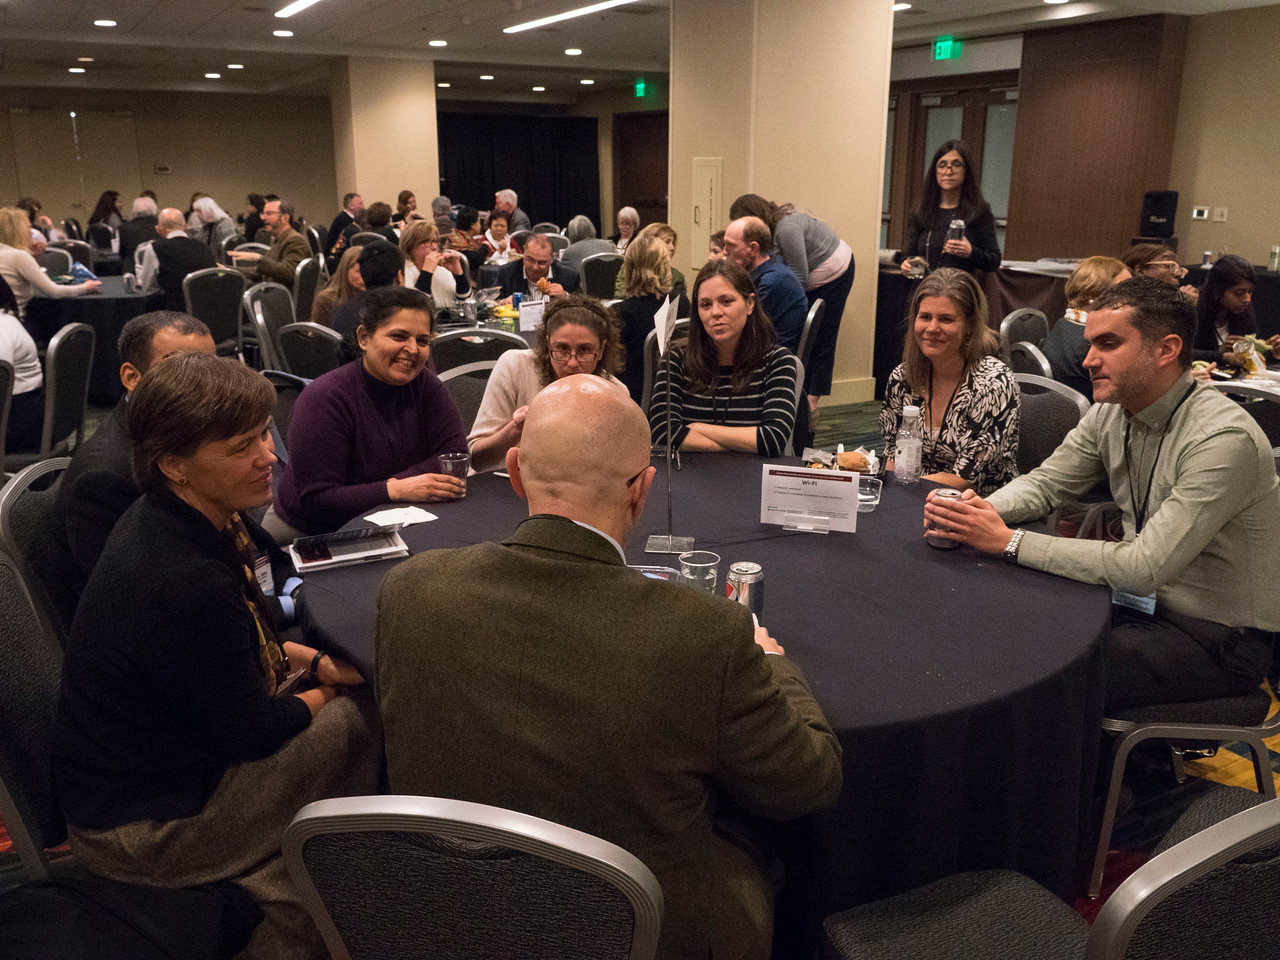 Faculty and attendees discussing topics in oncology and cancer survivorship - Meet the Faculty Networking Roundtables